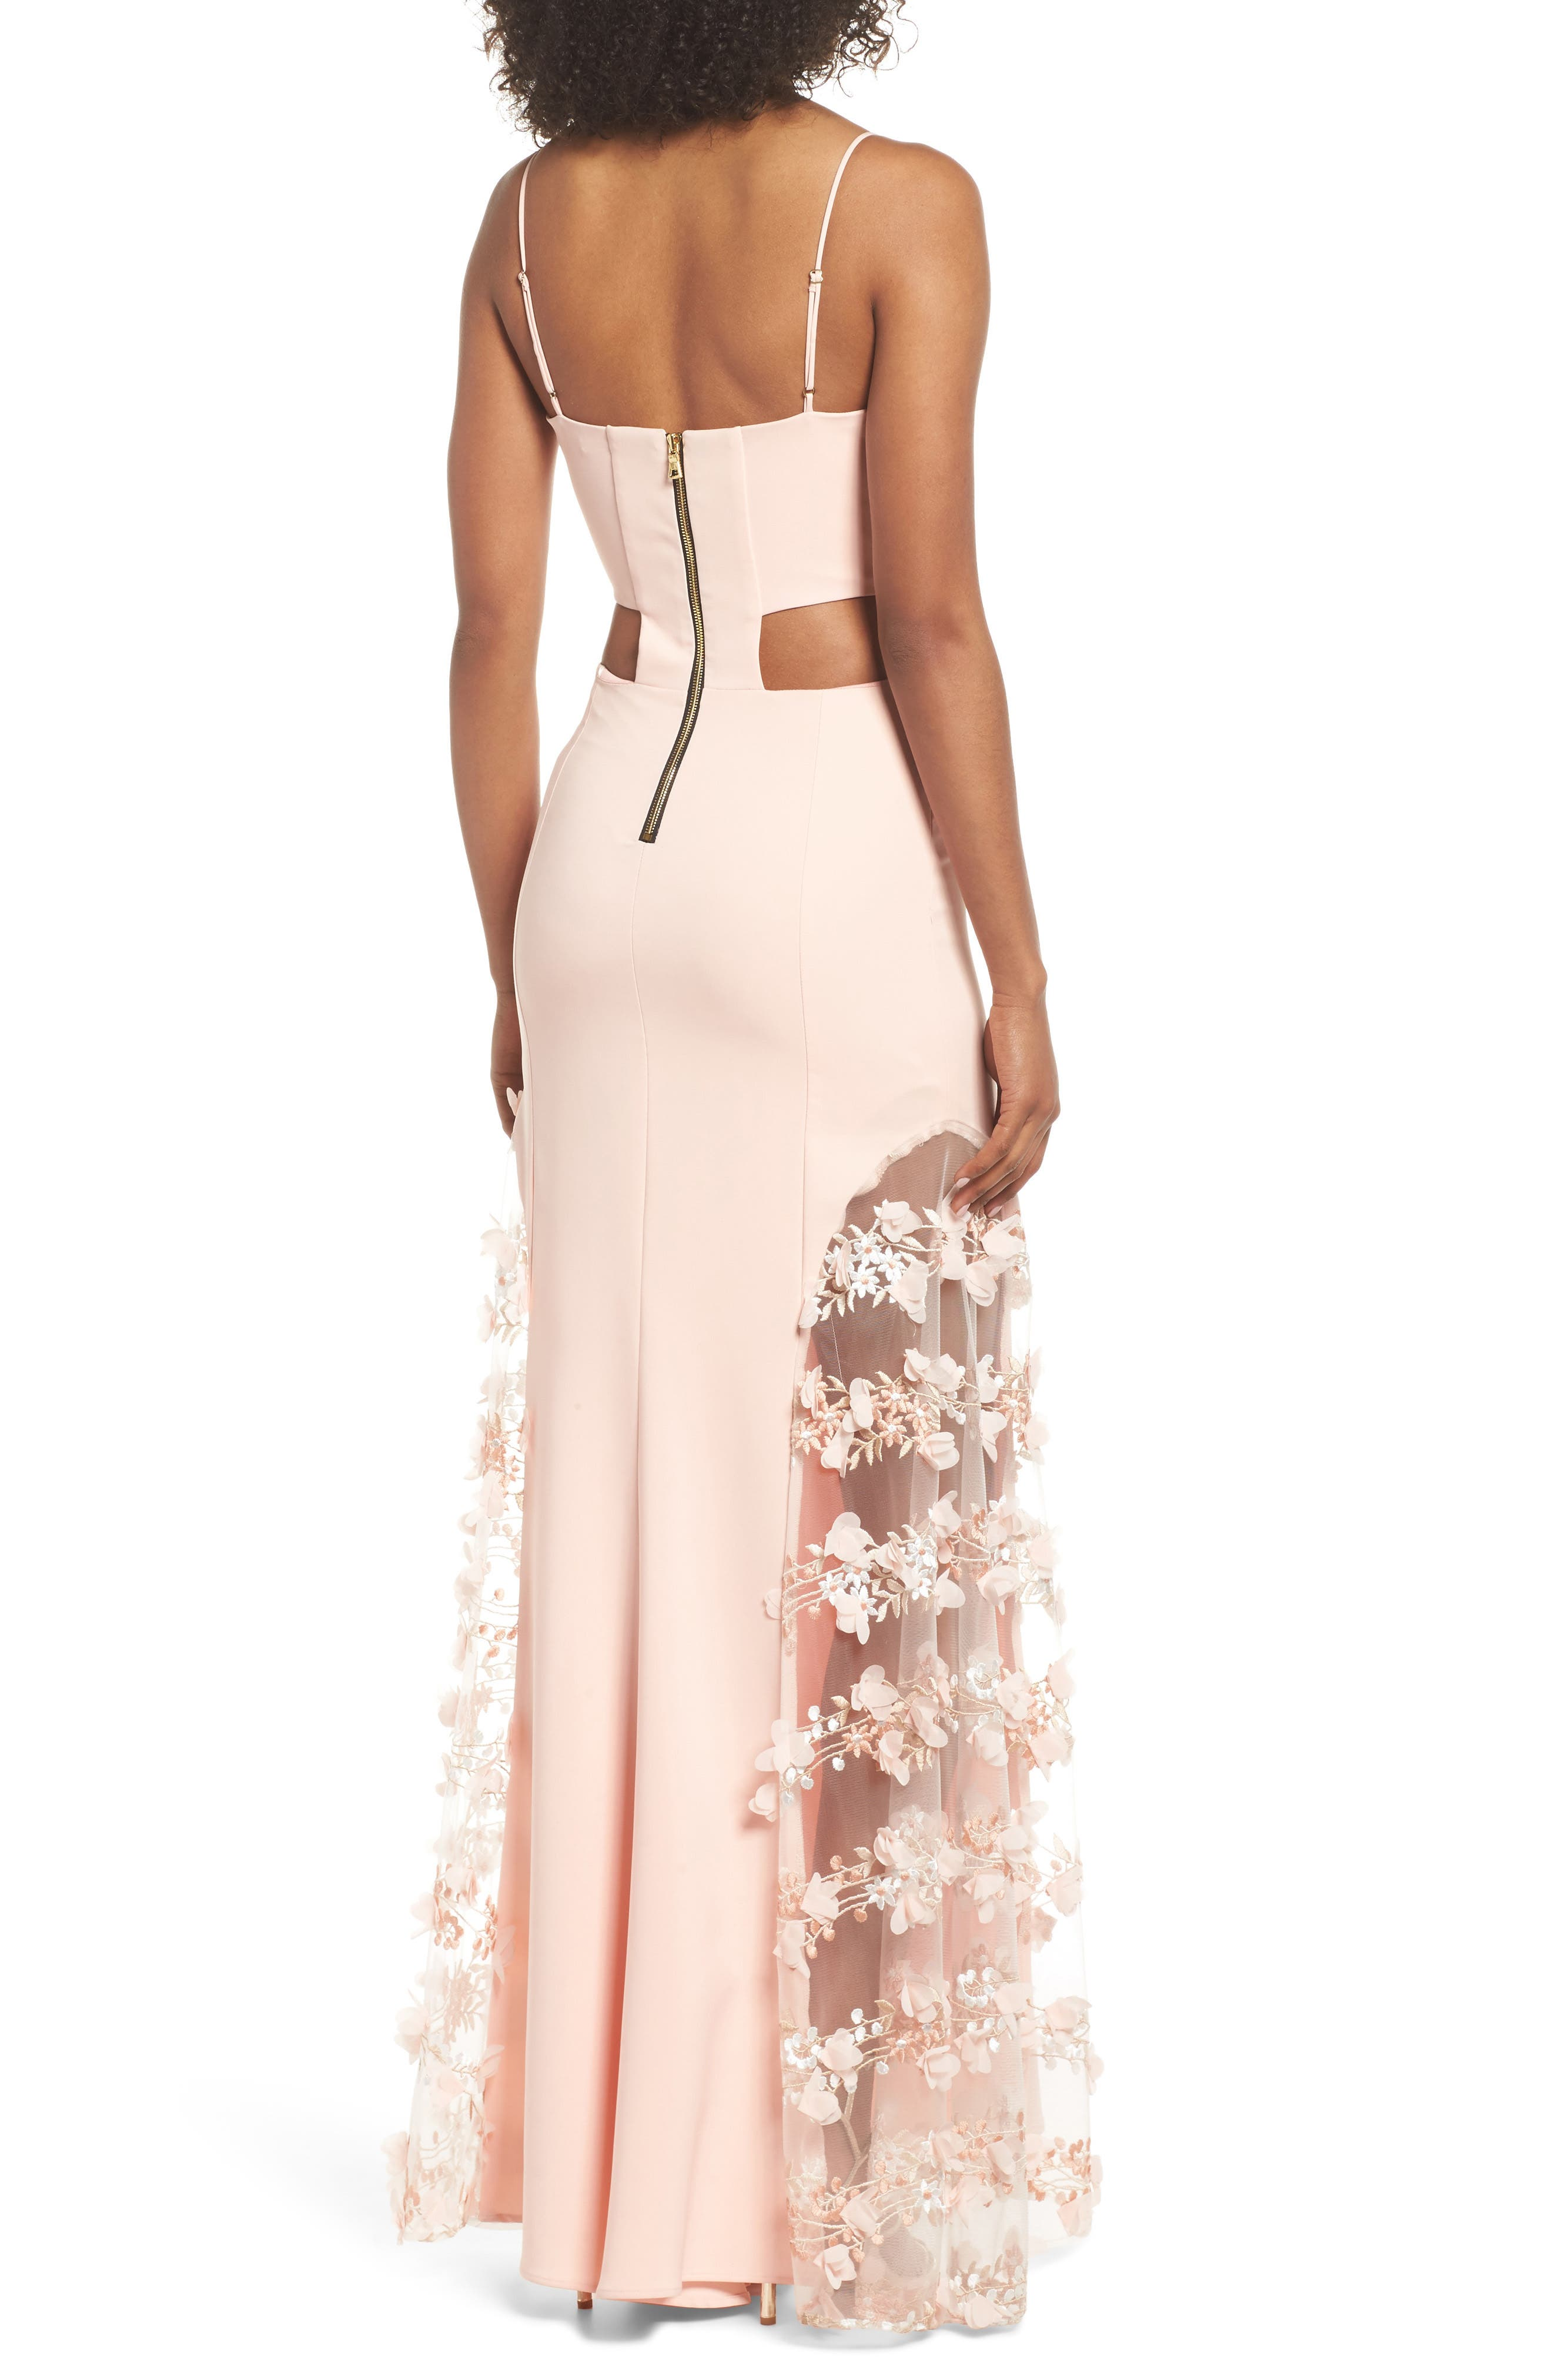 Alex Sheer Panel A-Line Gown,                             Alternate thumbnail 2, color,                             Apricot